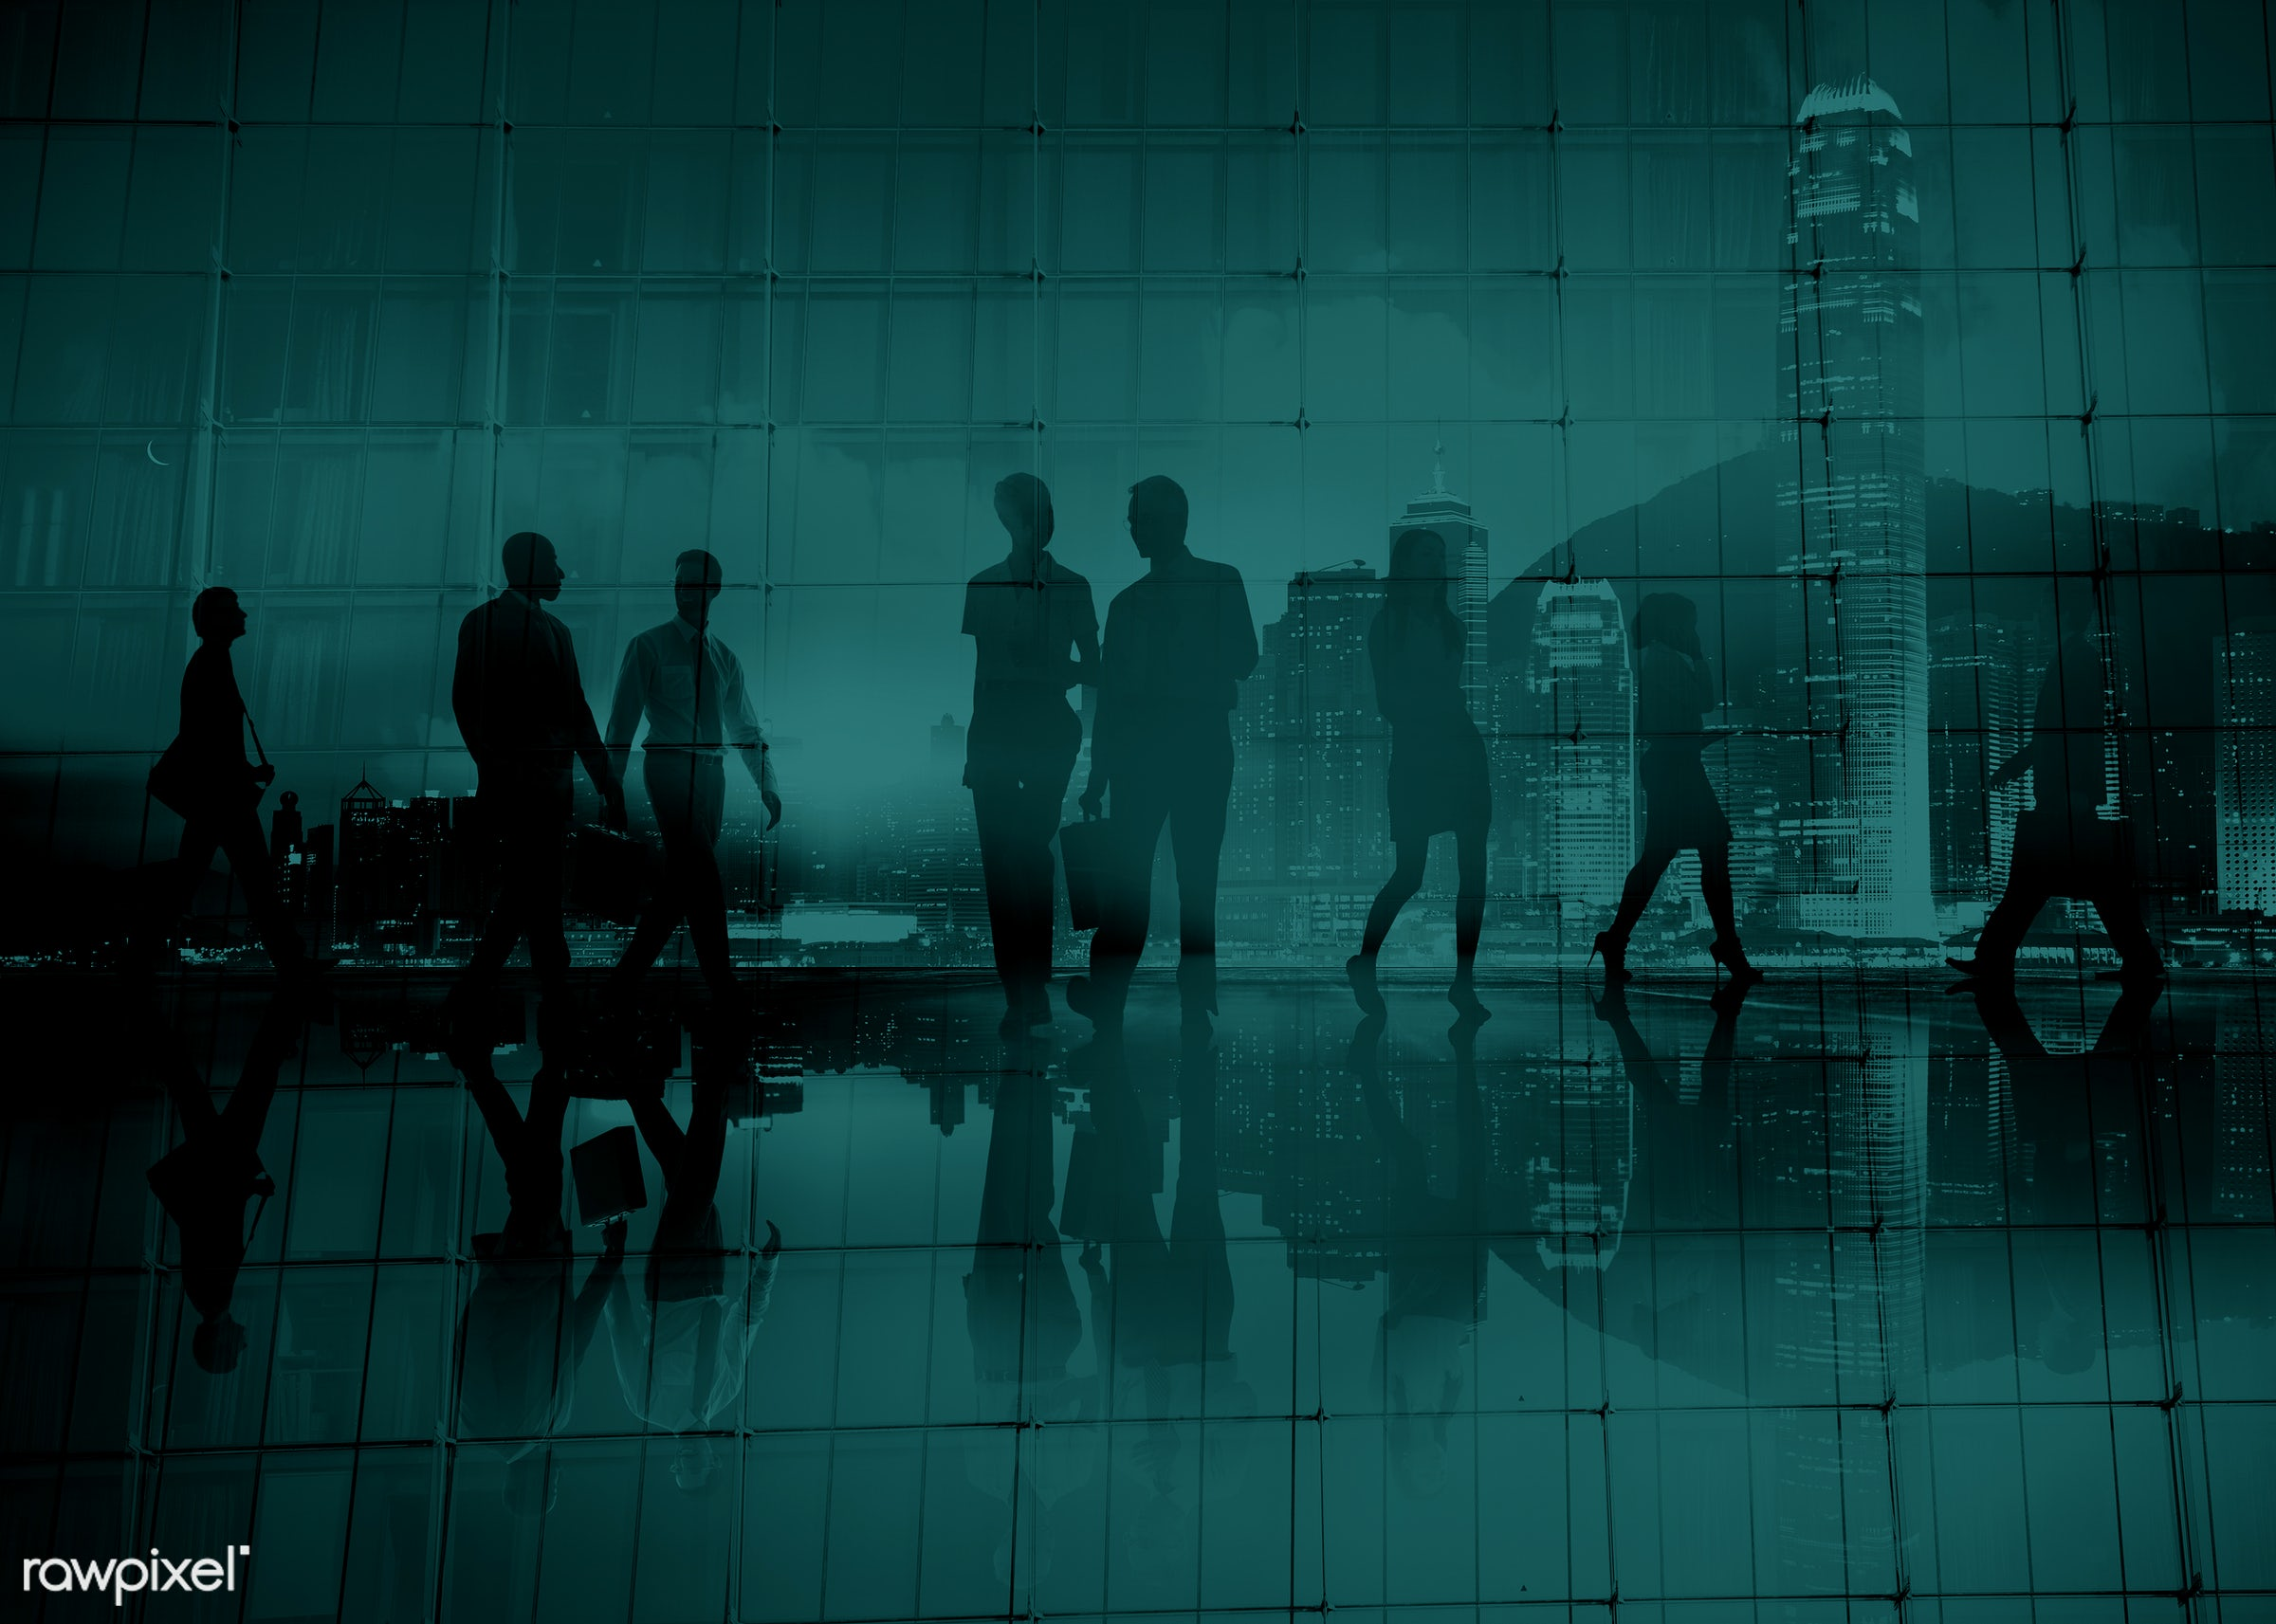 abstract, administration, building, business, business people, businessmen, businesswomen, busy, city, city life, cityscape...